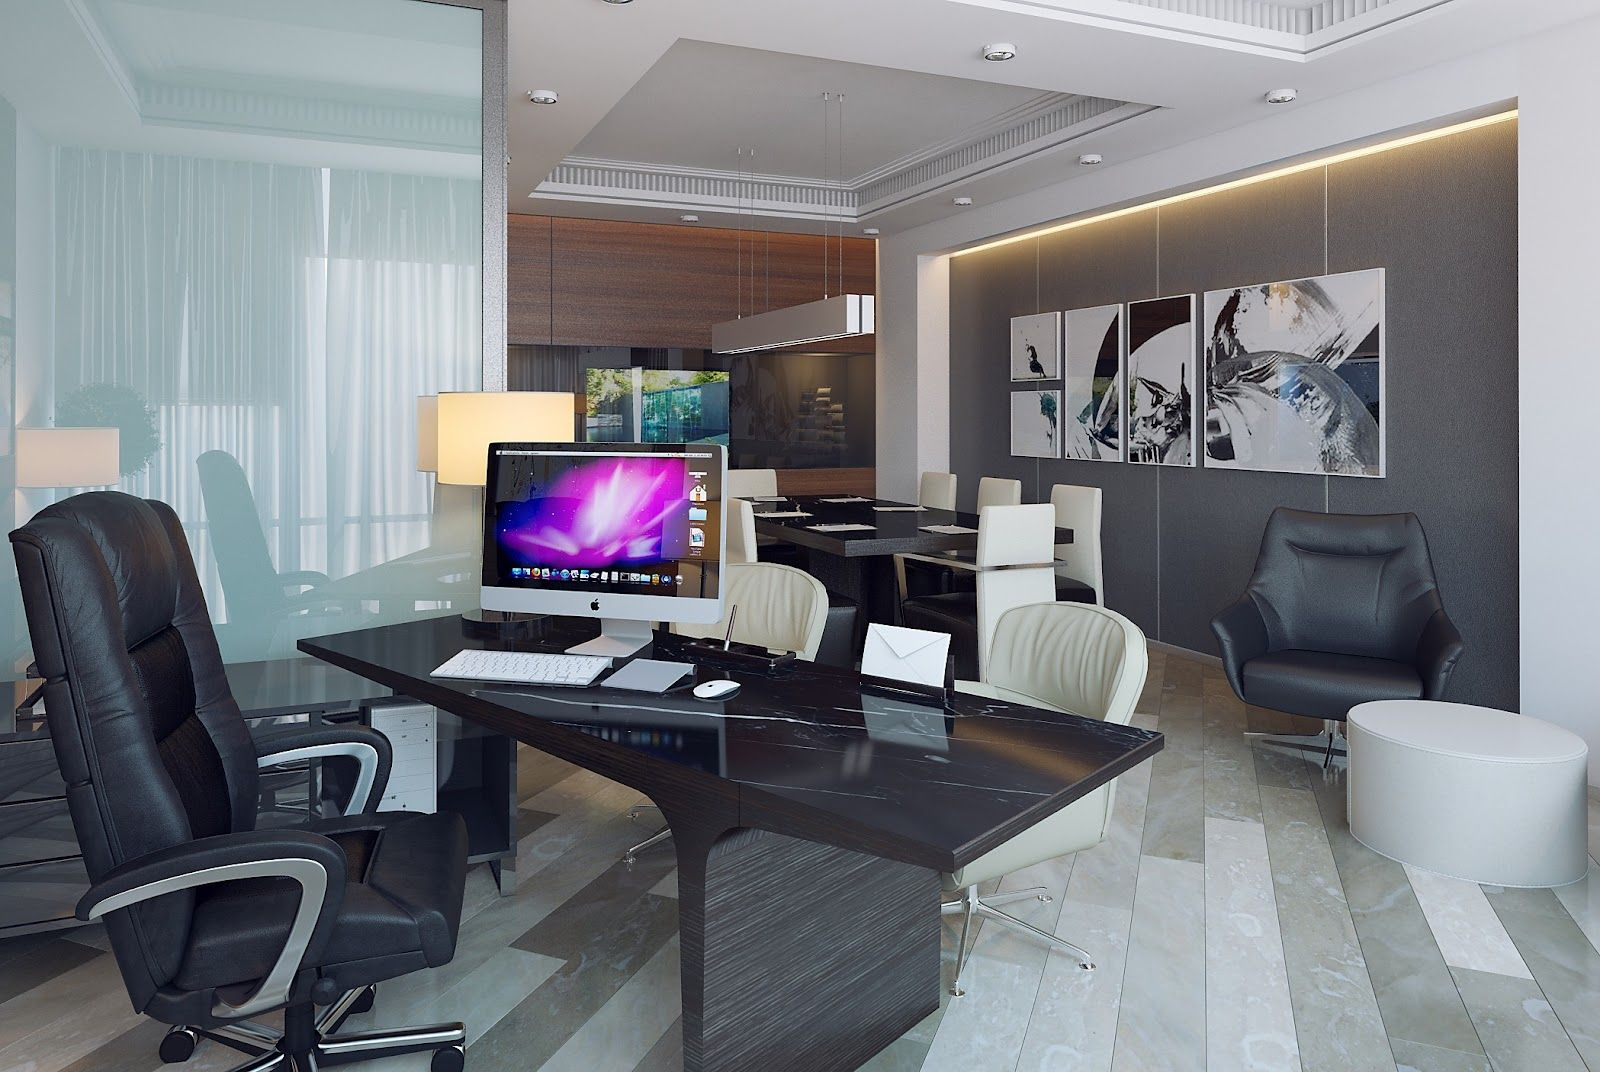 3d Design Office Of Executive Director Cool Rooms Room Interior Design